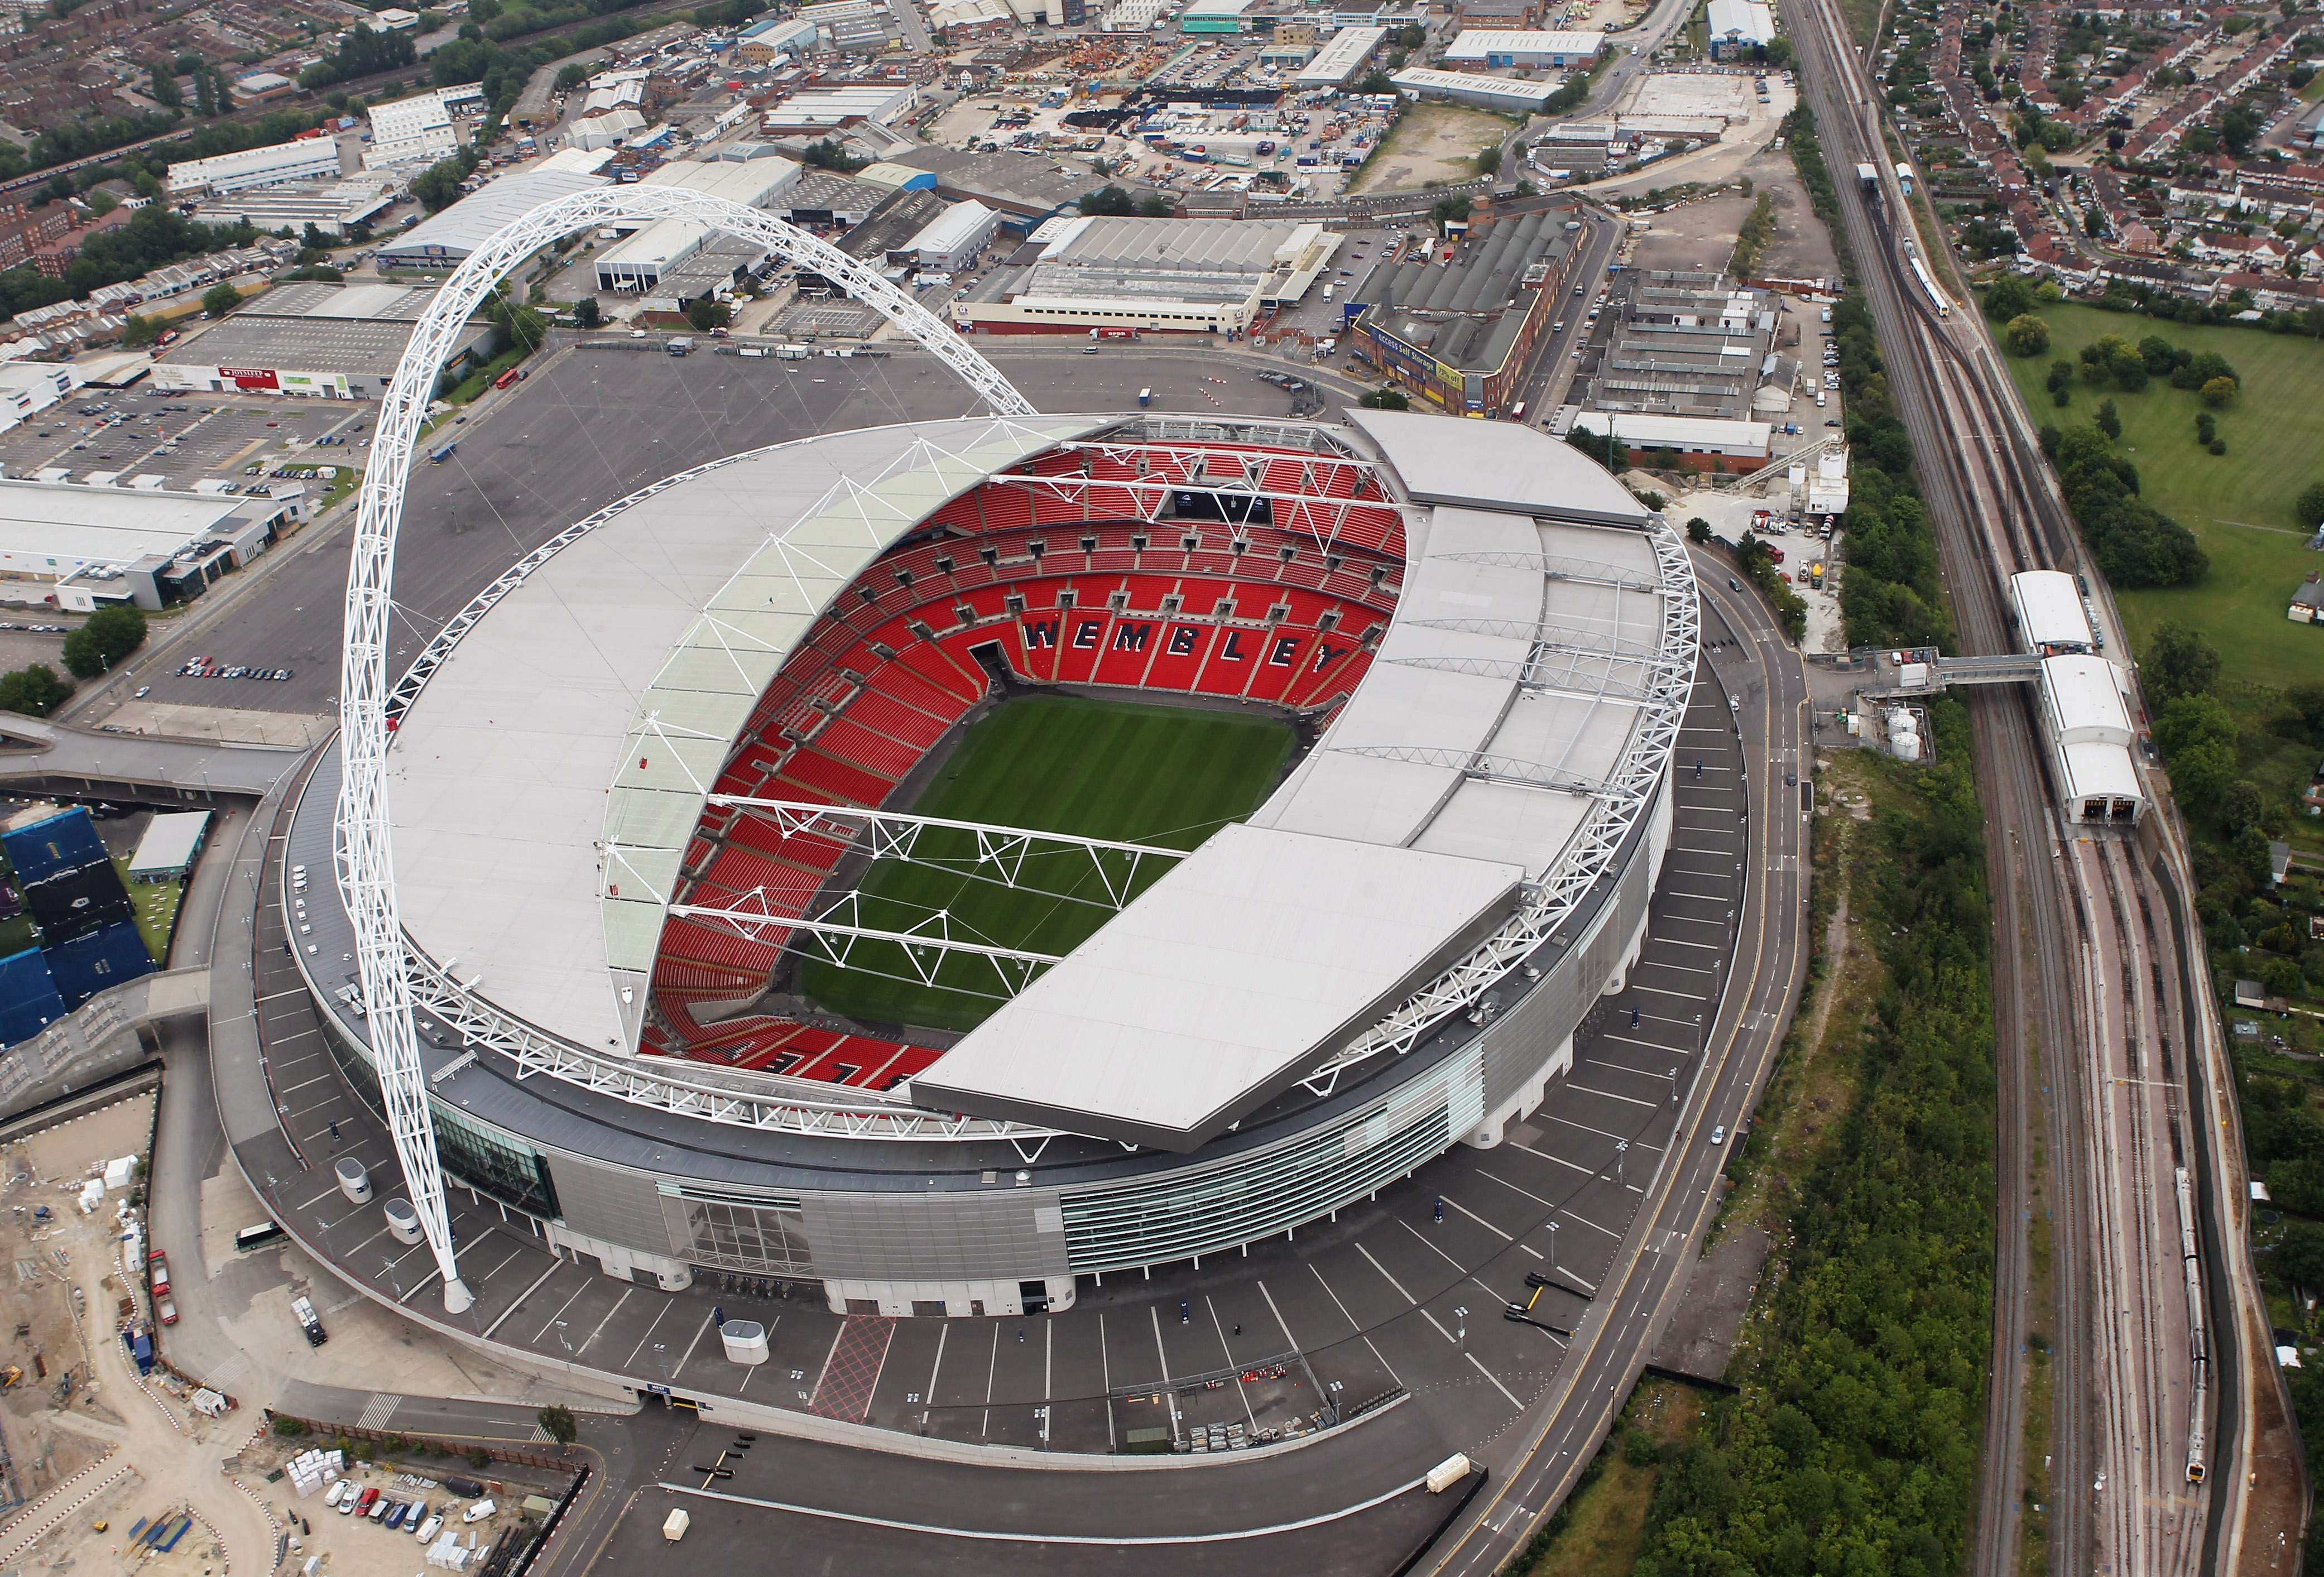 Tottenham Hotspur agree deal to use Wembley for Champions League matches in 2016/17 season